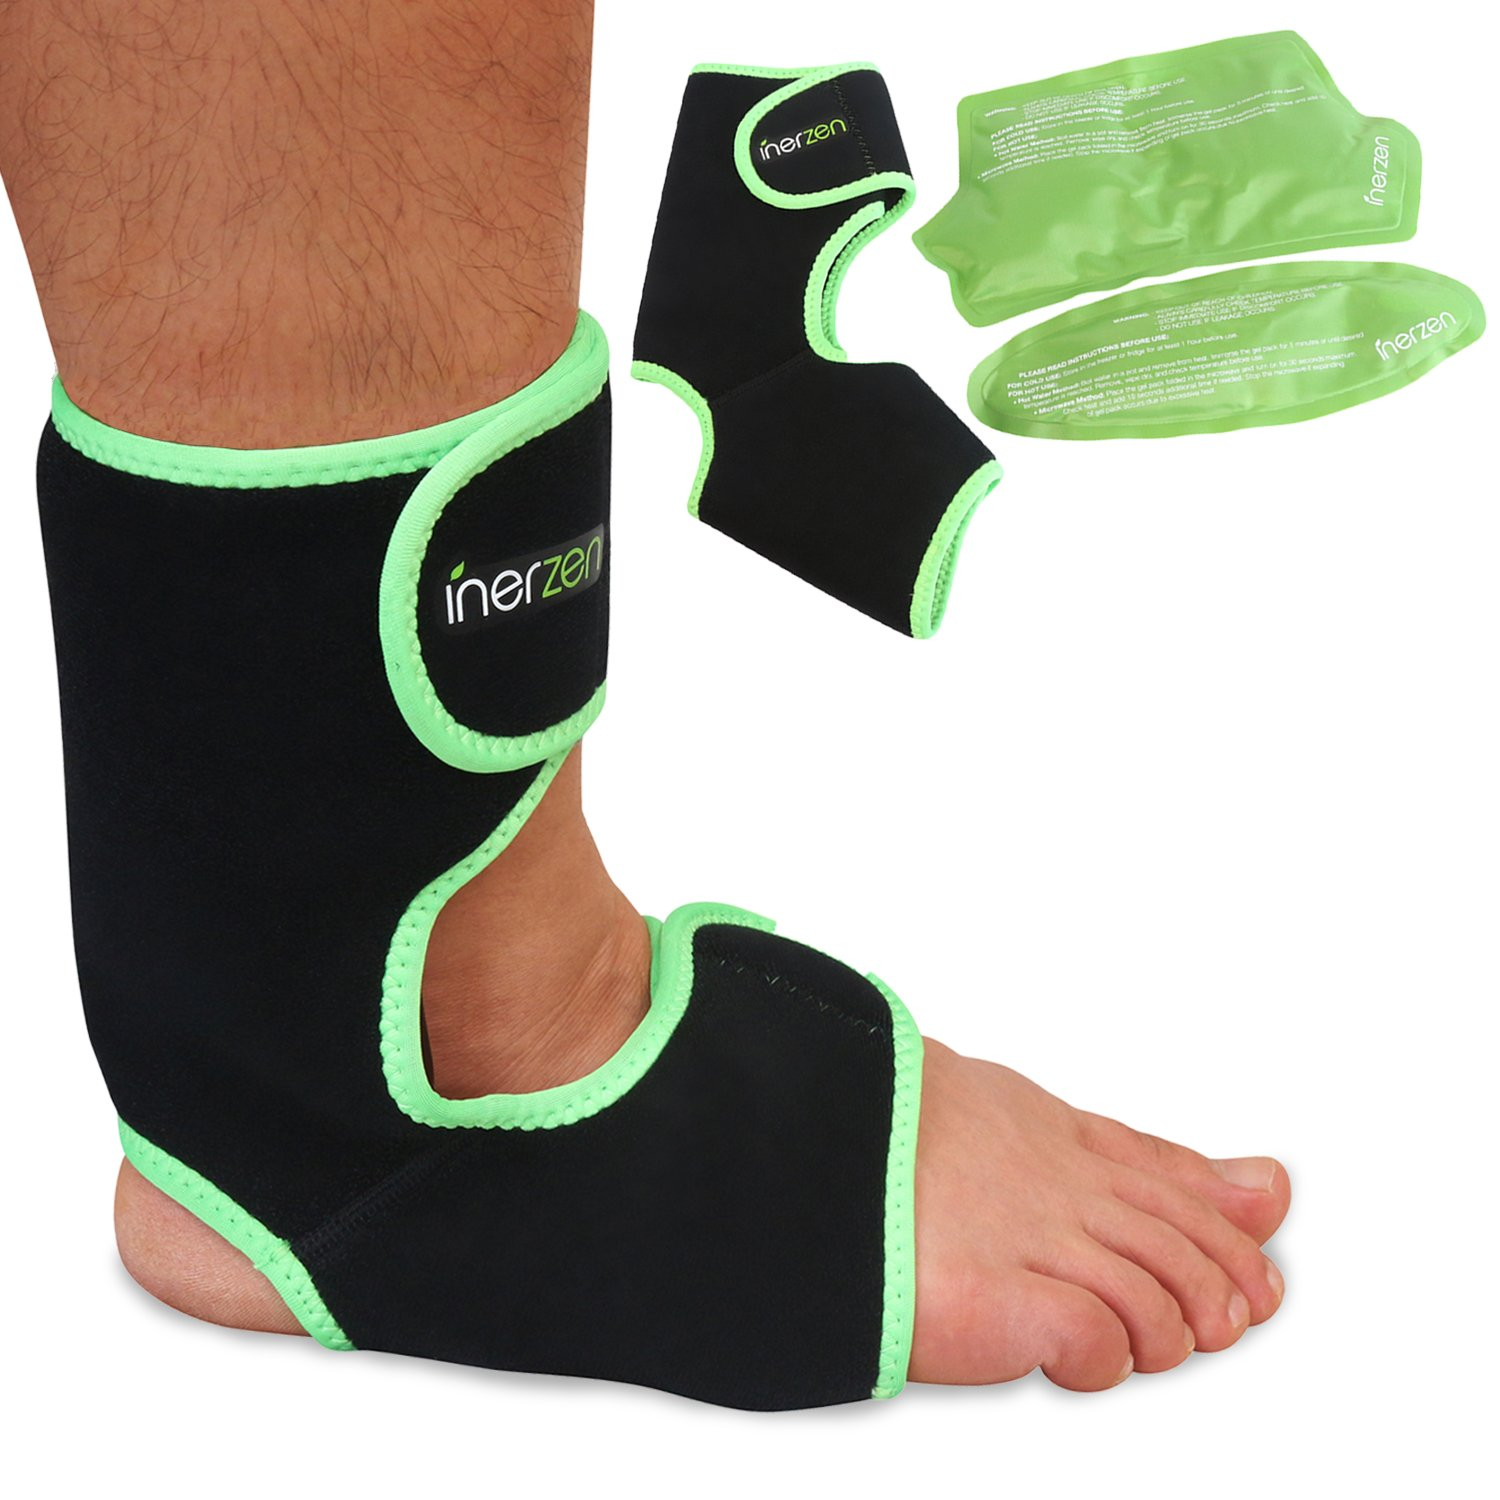 Inerzen Foot and Ankle Support Hot and Cold Gel Therapy Wrap - Includes 2 Hot or Cold Gel Packs for Pain Relief - Microwavable, Freezable, Reusable (One Size Fits All)